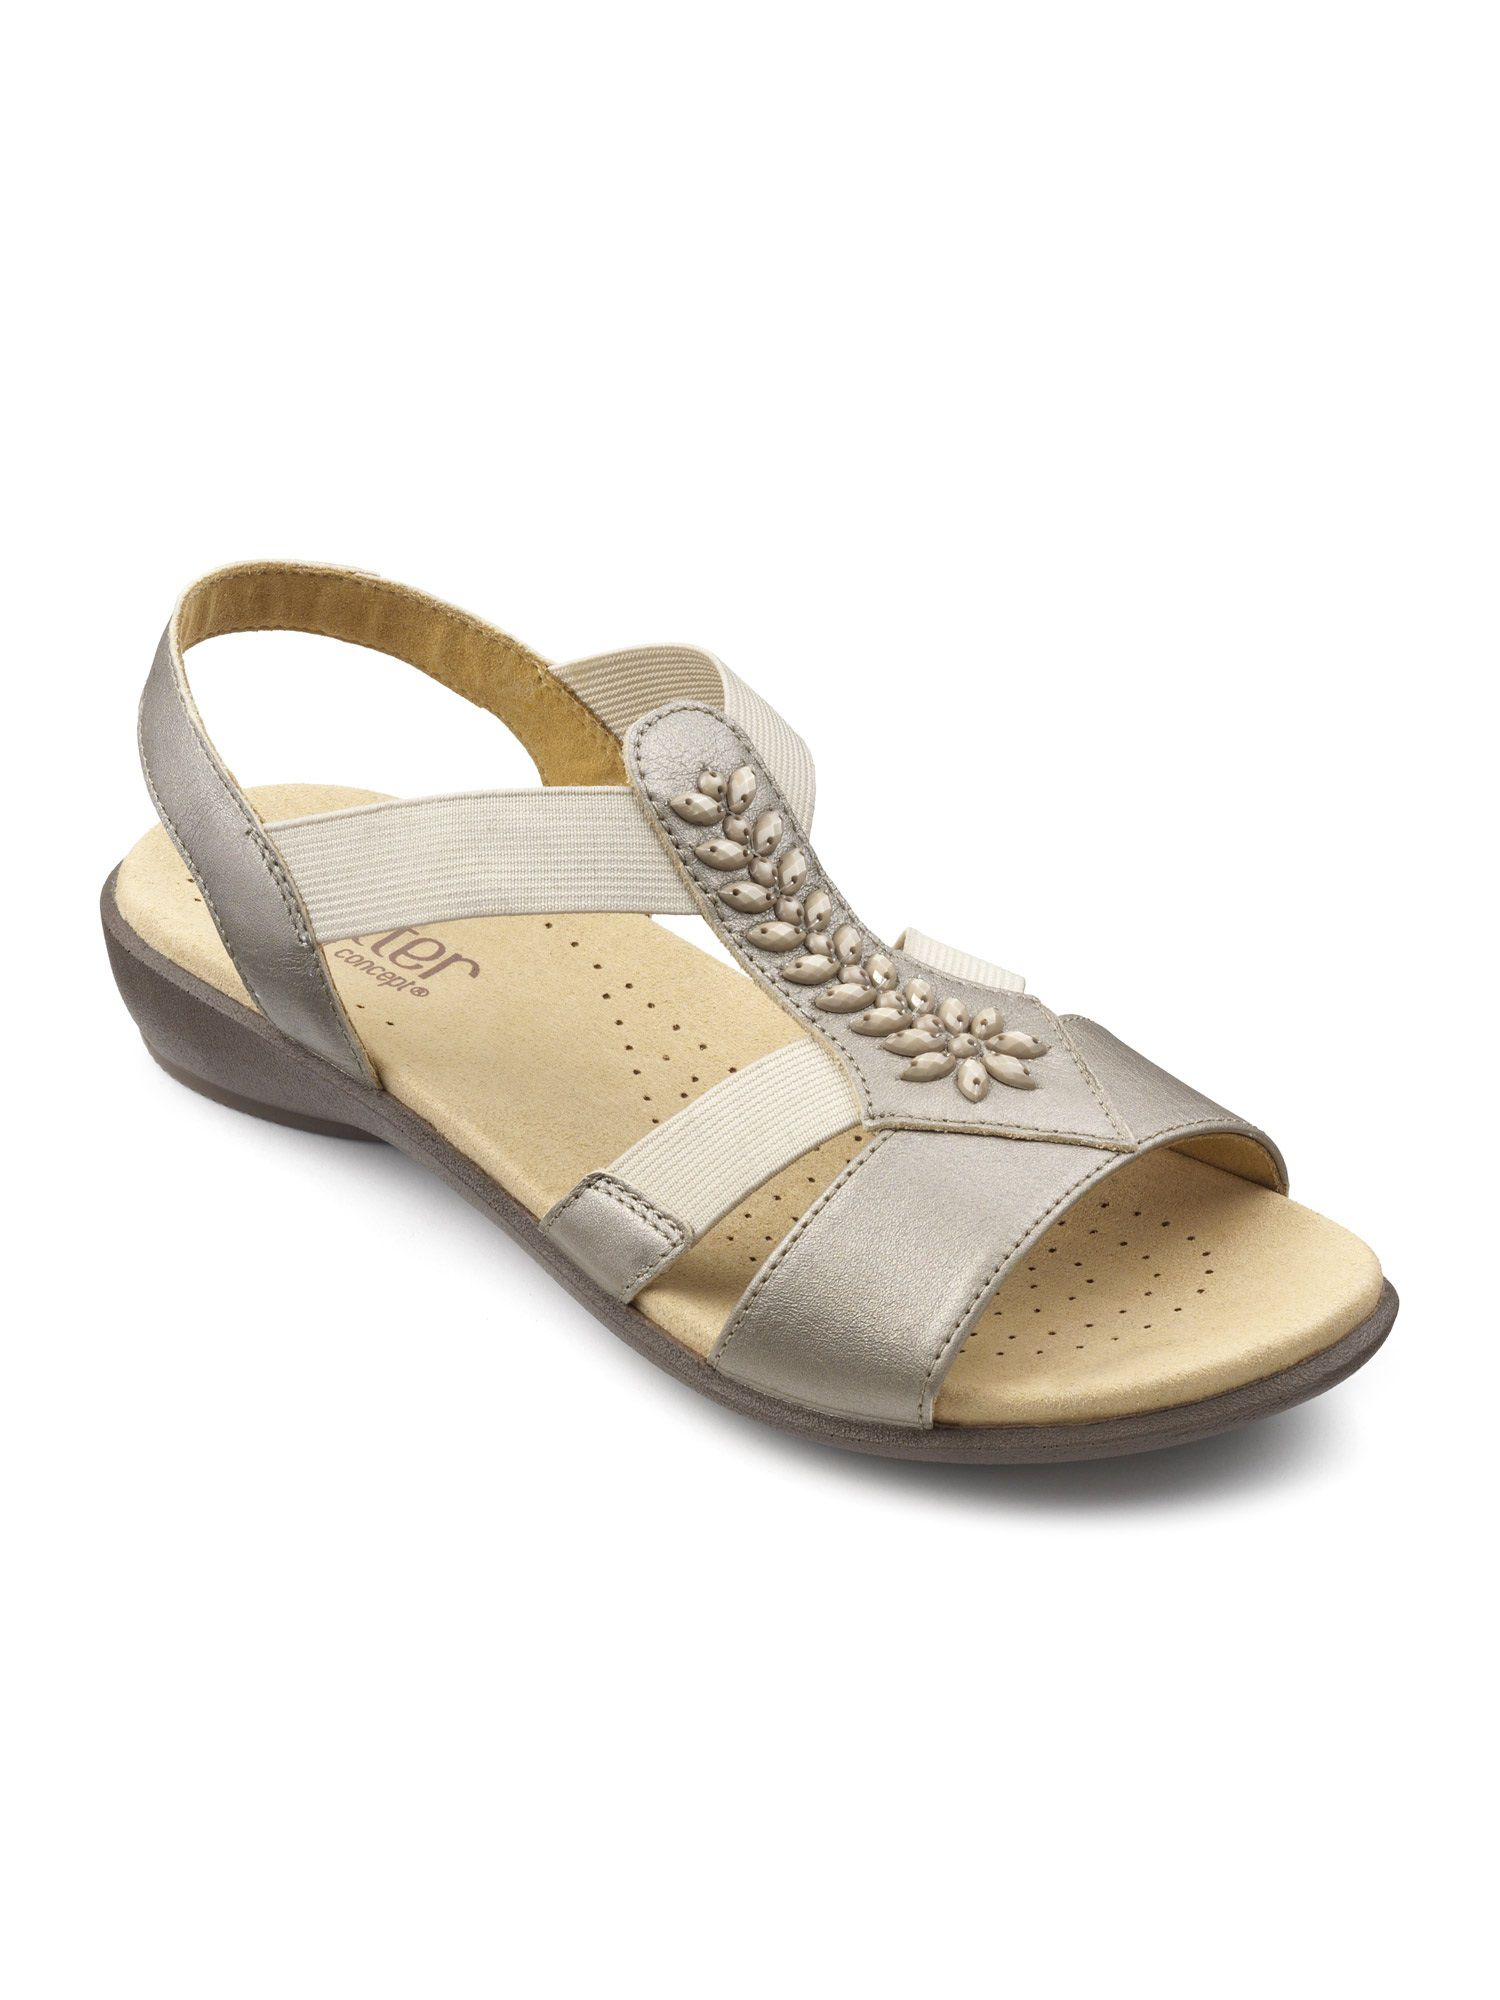 Hotter Beam Ladies Sandal, Silverlic